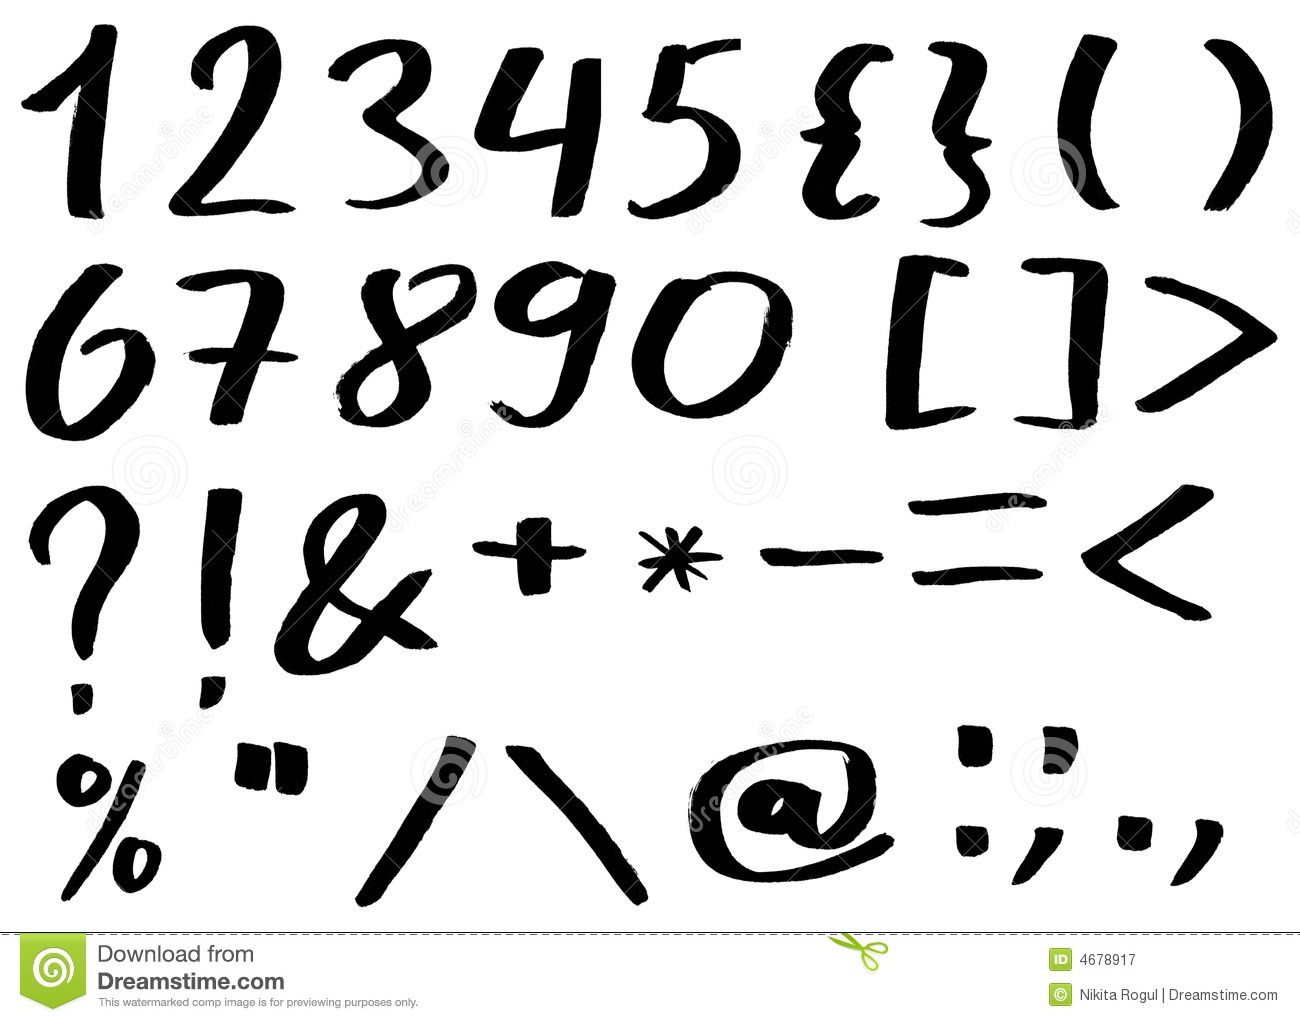 support information with Royalty Free Stock Photography Handwritten Alphabet Numbers Punctuation Image4678917 on Anthropologie Logo also File Guaiacol furthermore Sls 20077060 moreover Detail planche additionally Keyboard  puter Peripherals 147169.